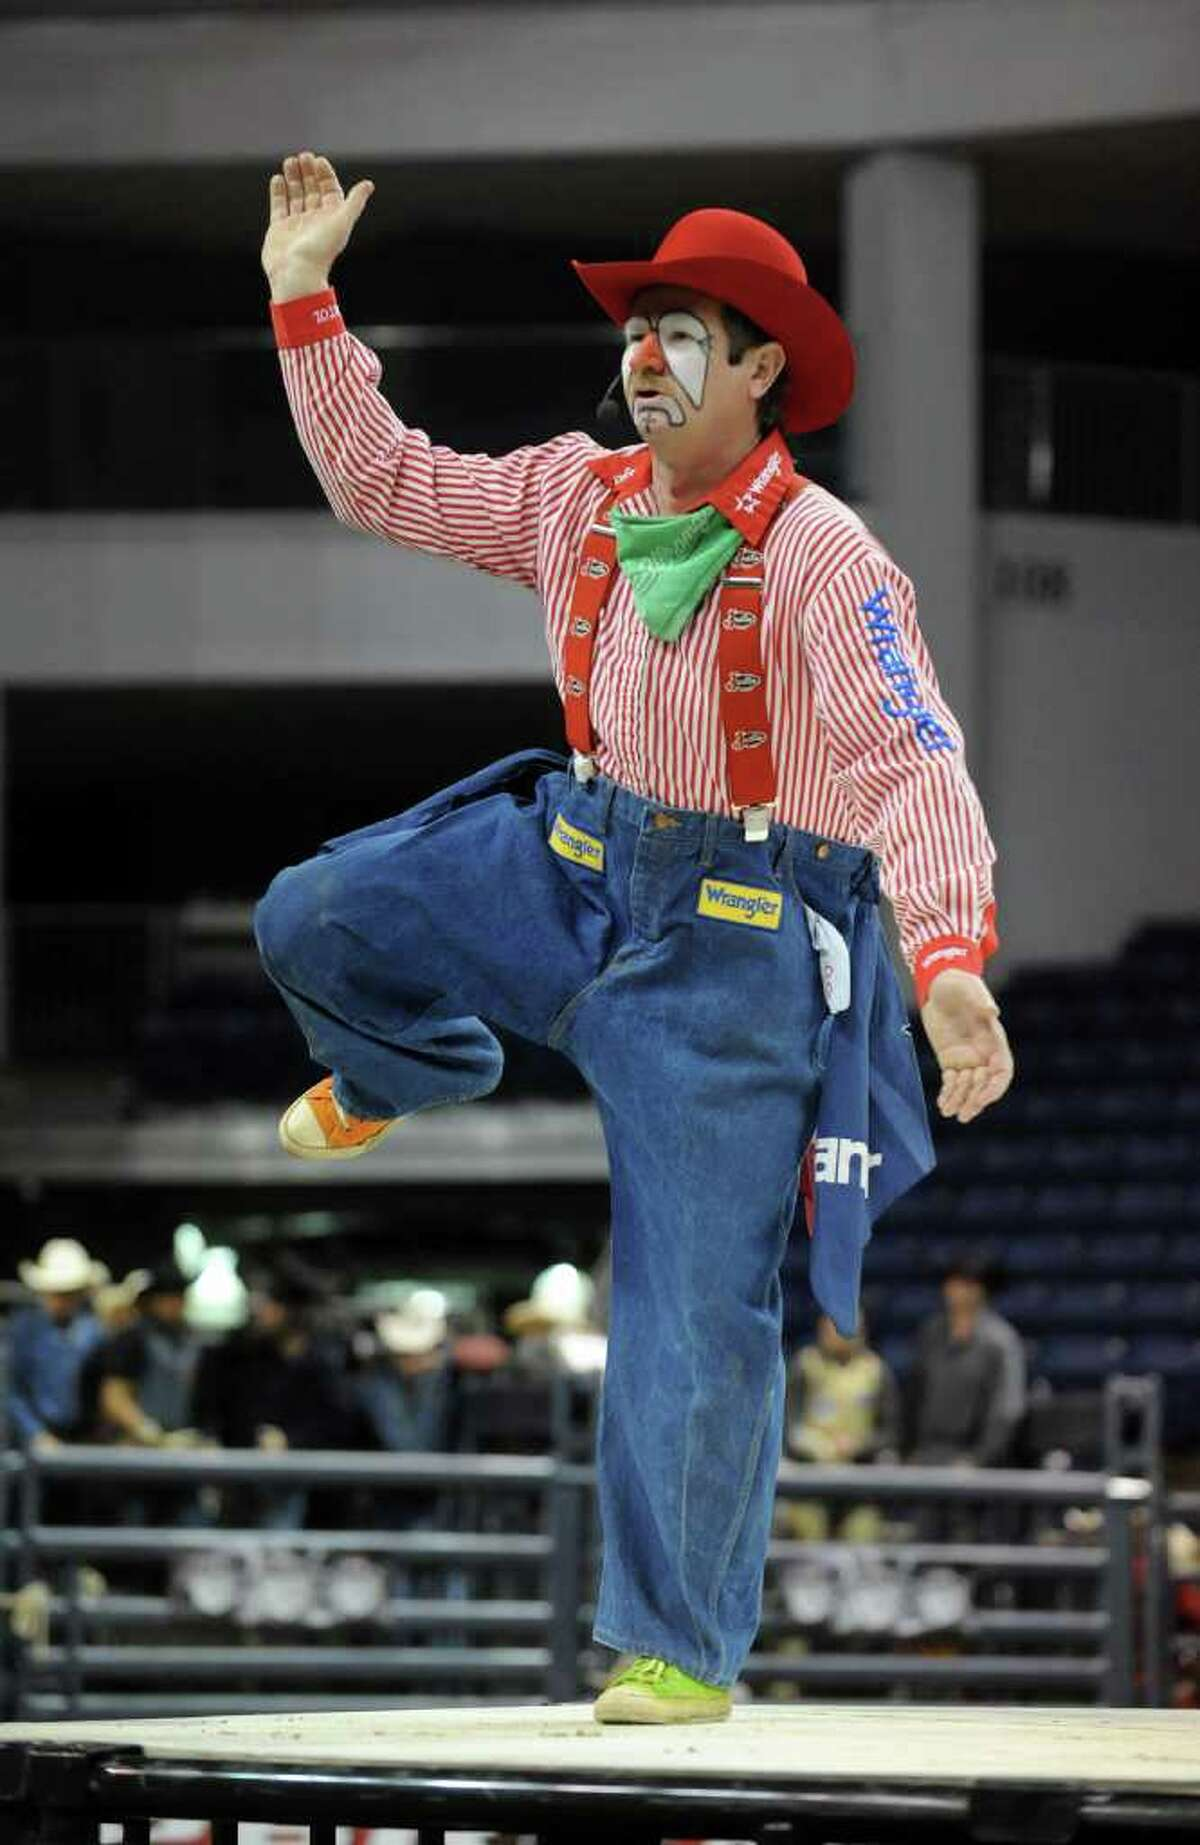 Rodeo clown Gizmo McCracken entertains the audience during the Professional Bull Riders Touring Pro Division's Town Fair Tire Invitational at Webster Bank Arena at Harbor Yard in Bridgeport, Conn. on Friday January 21, 2011.